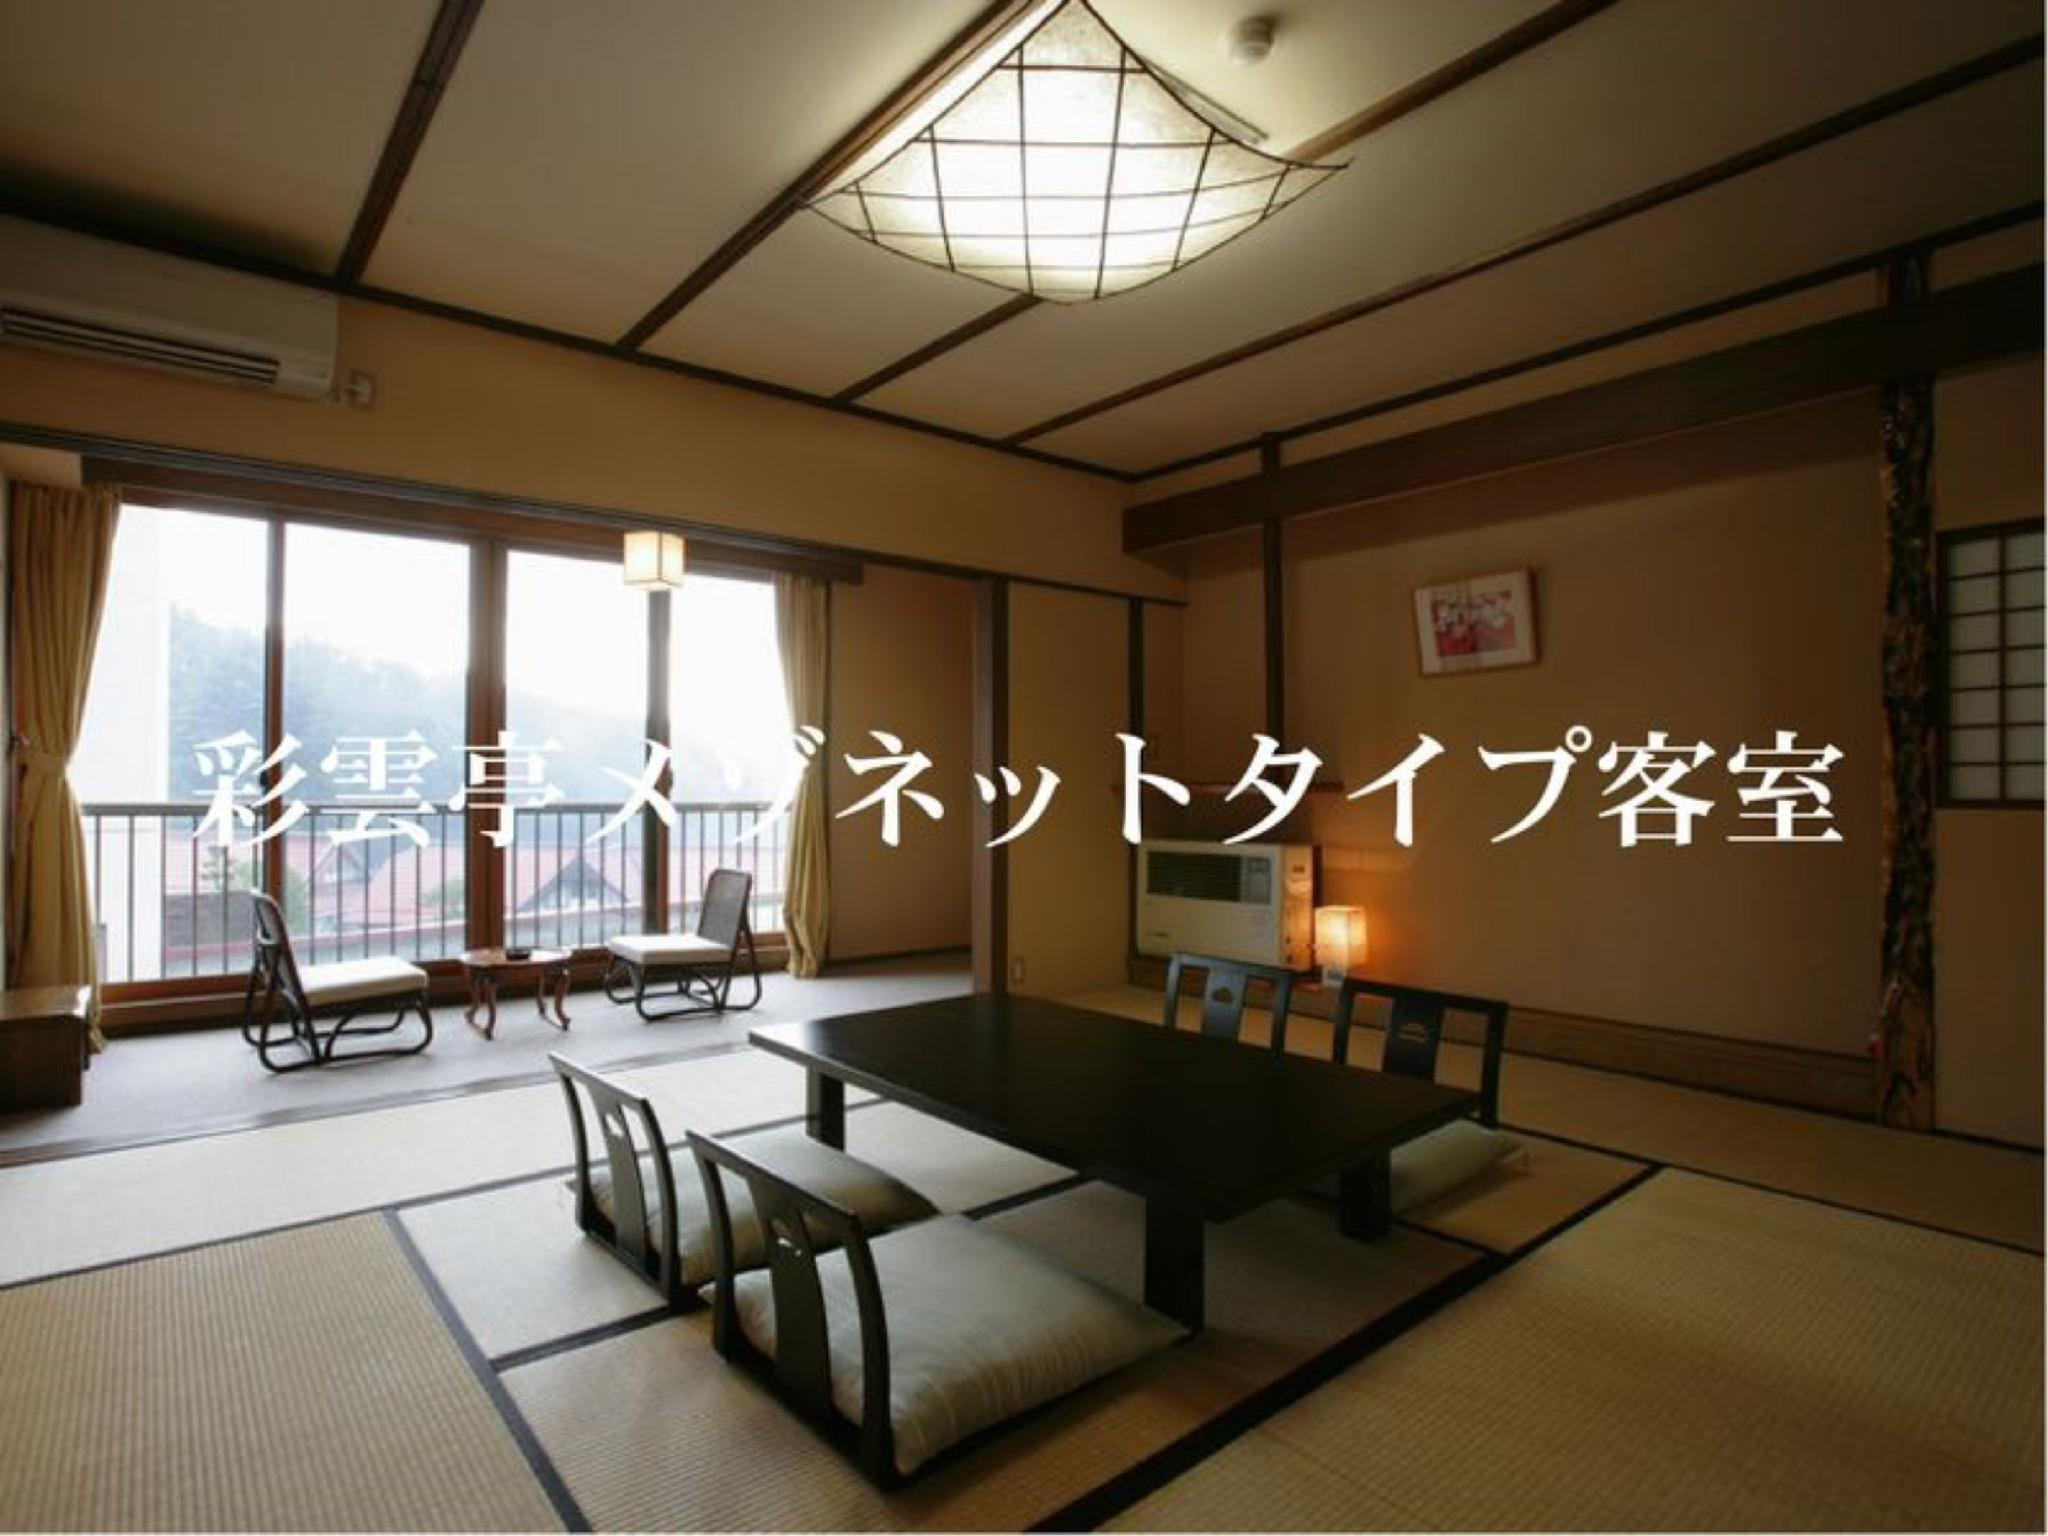 ◇彩雲亭◇【メゾネットタイプ客室】(和室17.5畳+半露天) (Maisonette (Japanese-style Room + Semi Open-air Bath, Saiun-Tei Wing))